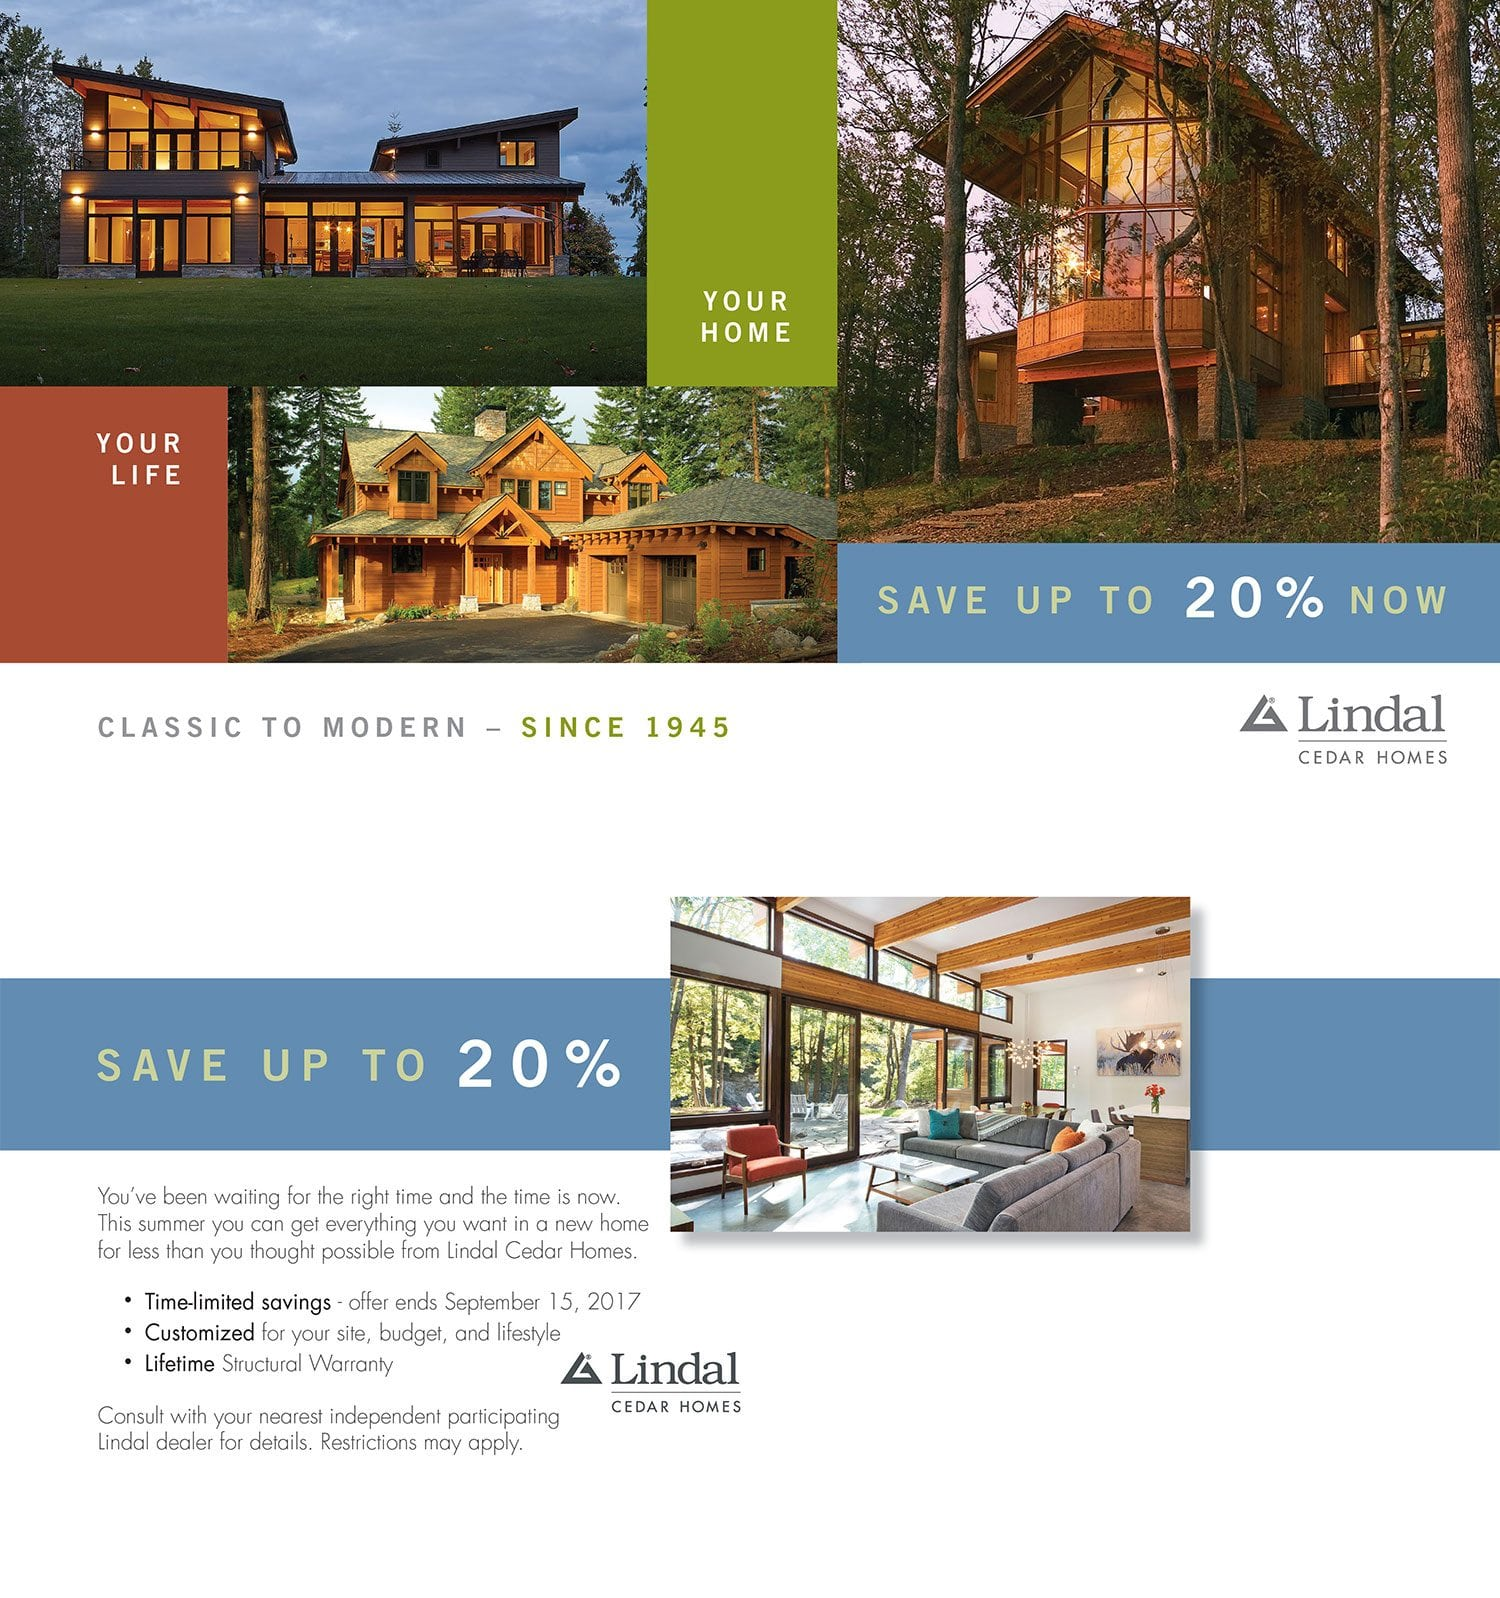 Summer 2017 Lindal Cedar Homes Sales Promotion